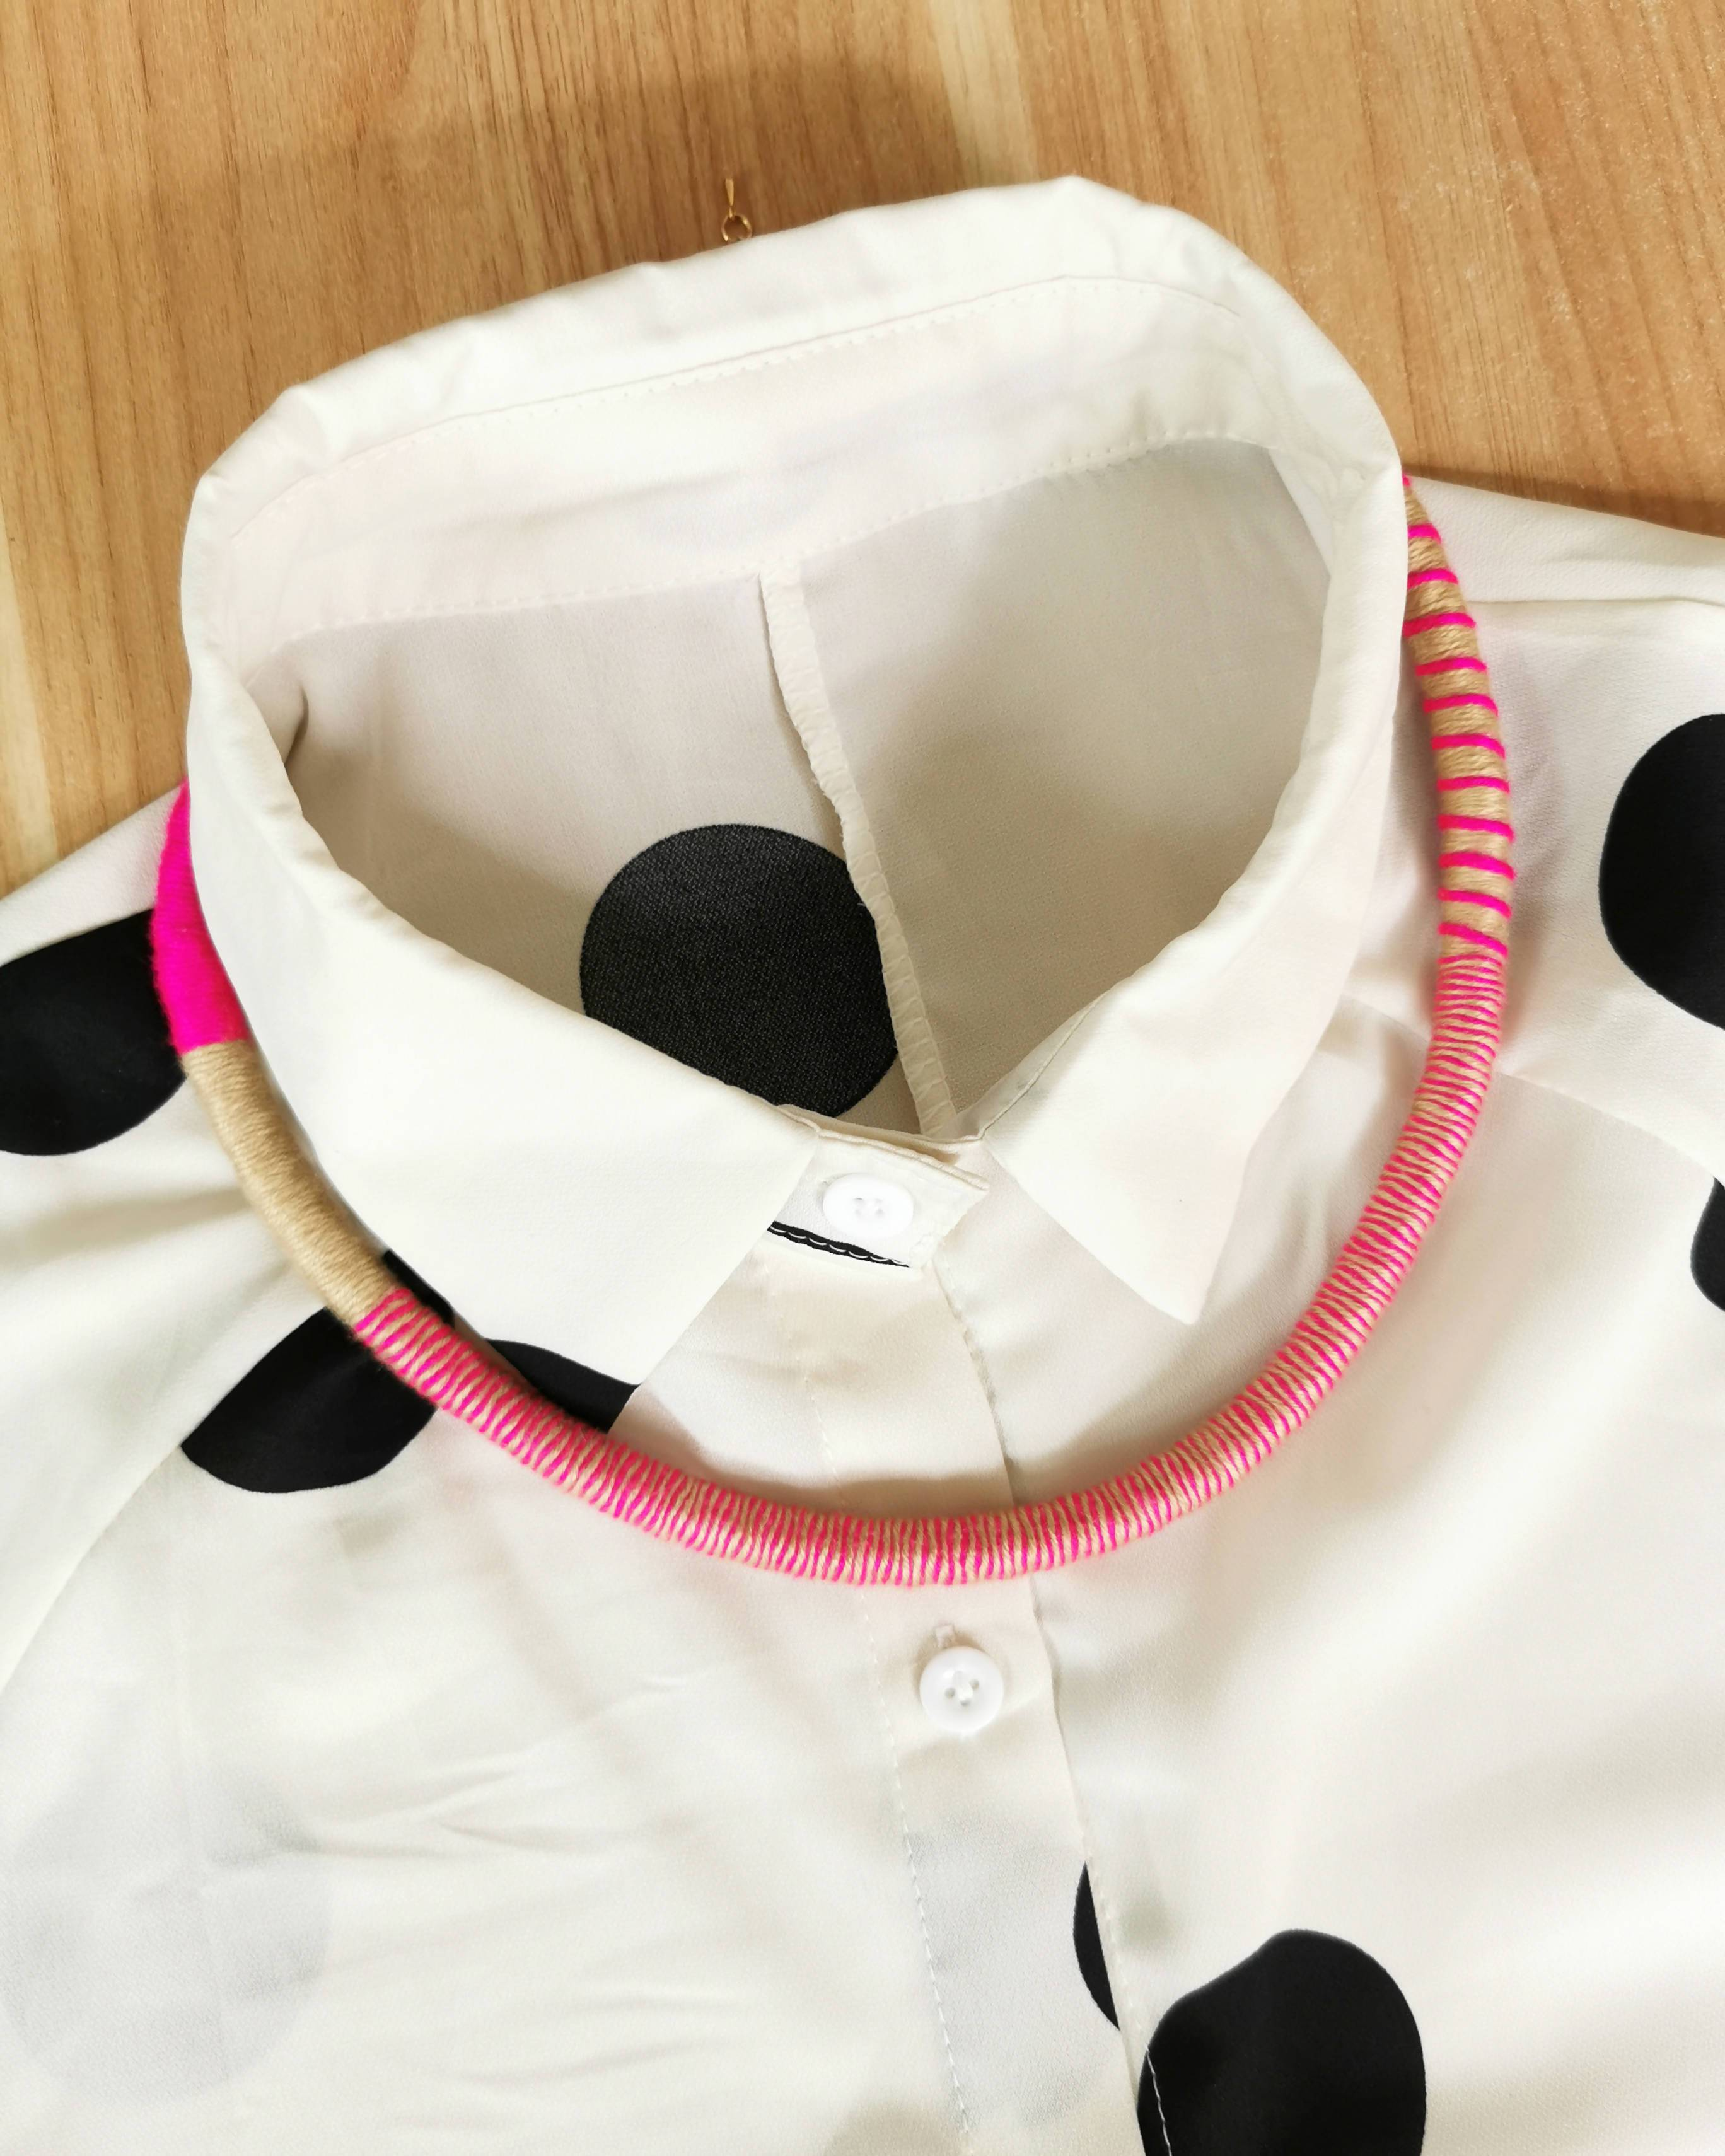 Tribeca Multi-wear Rope Necklace/Bracelet - Hot Pink/Khaki - Bracelets - Playtime Rebs Studio - Naiise